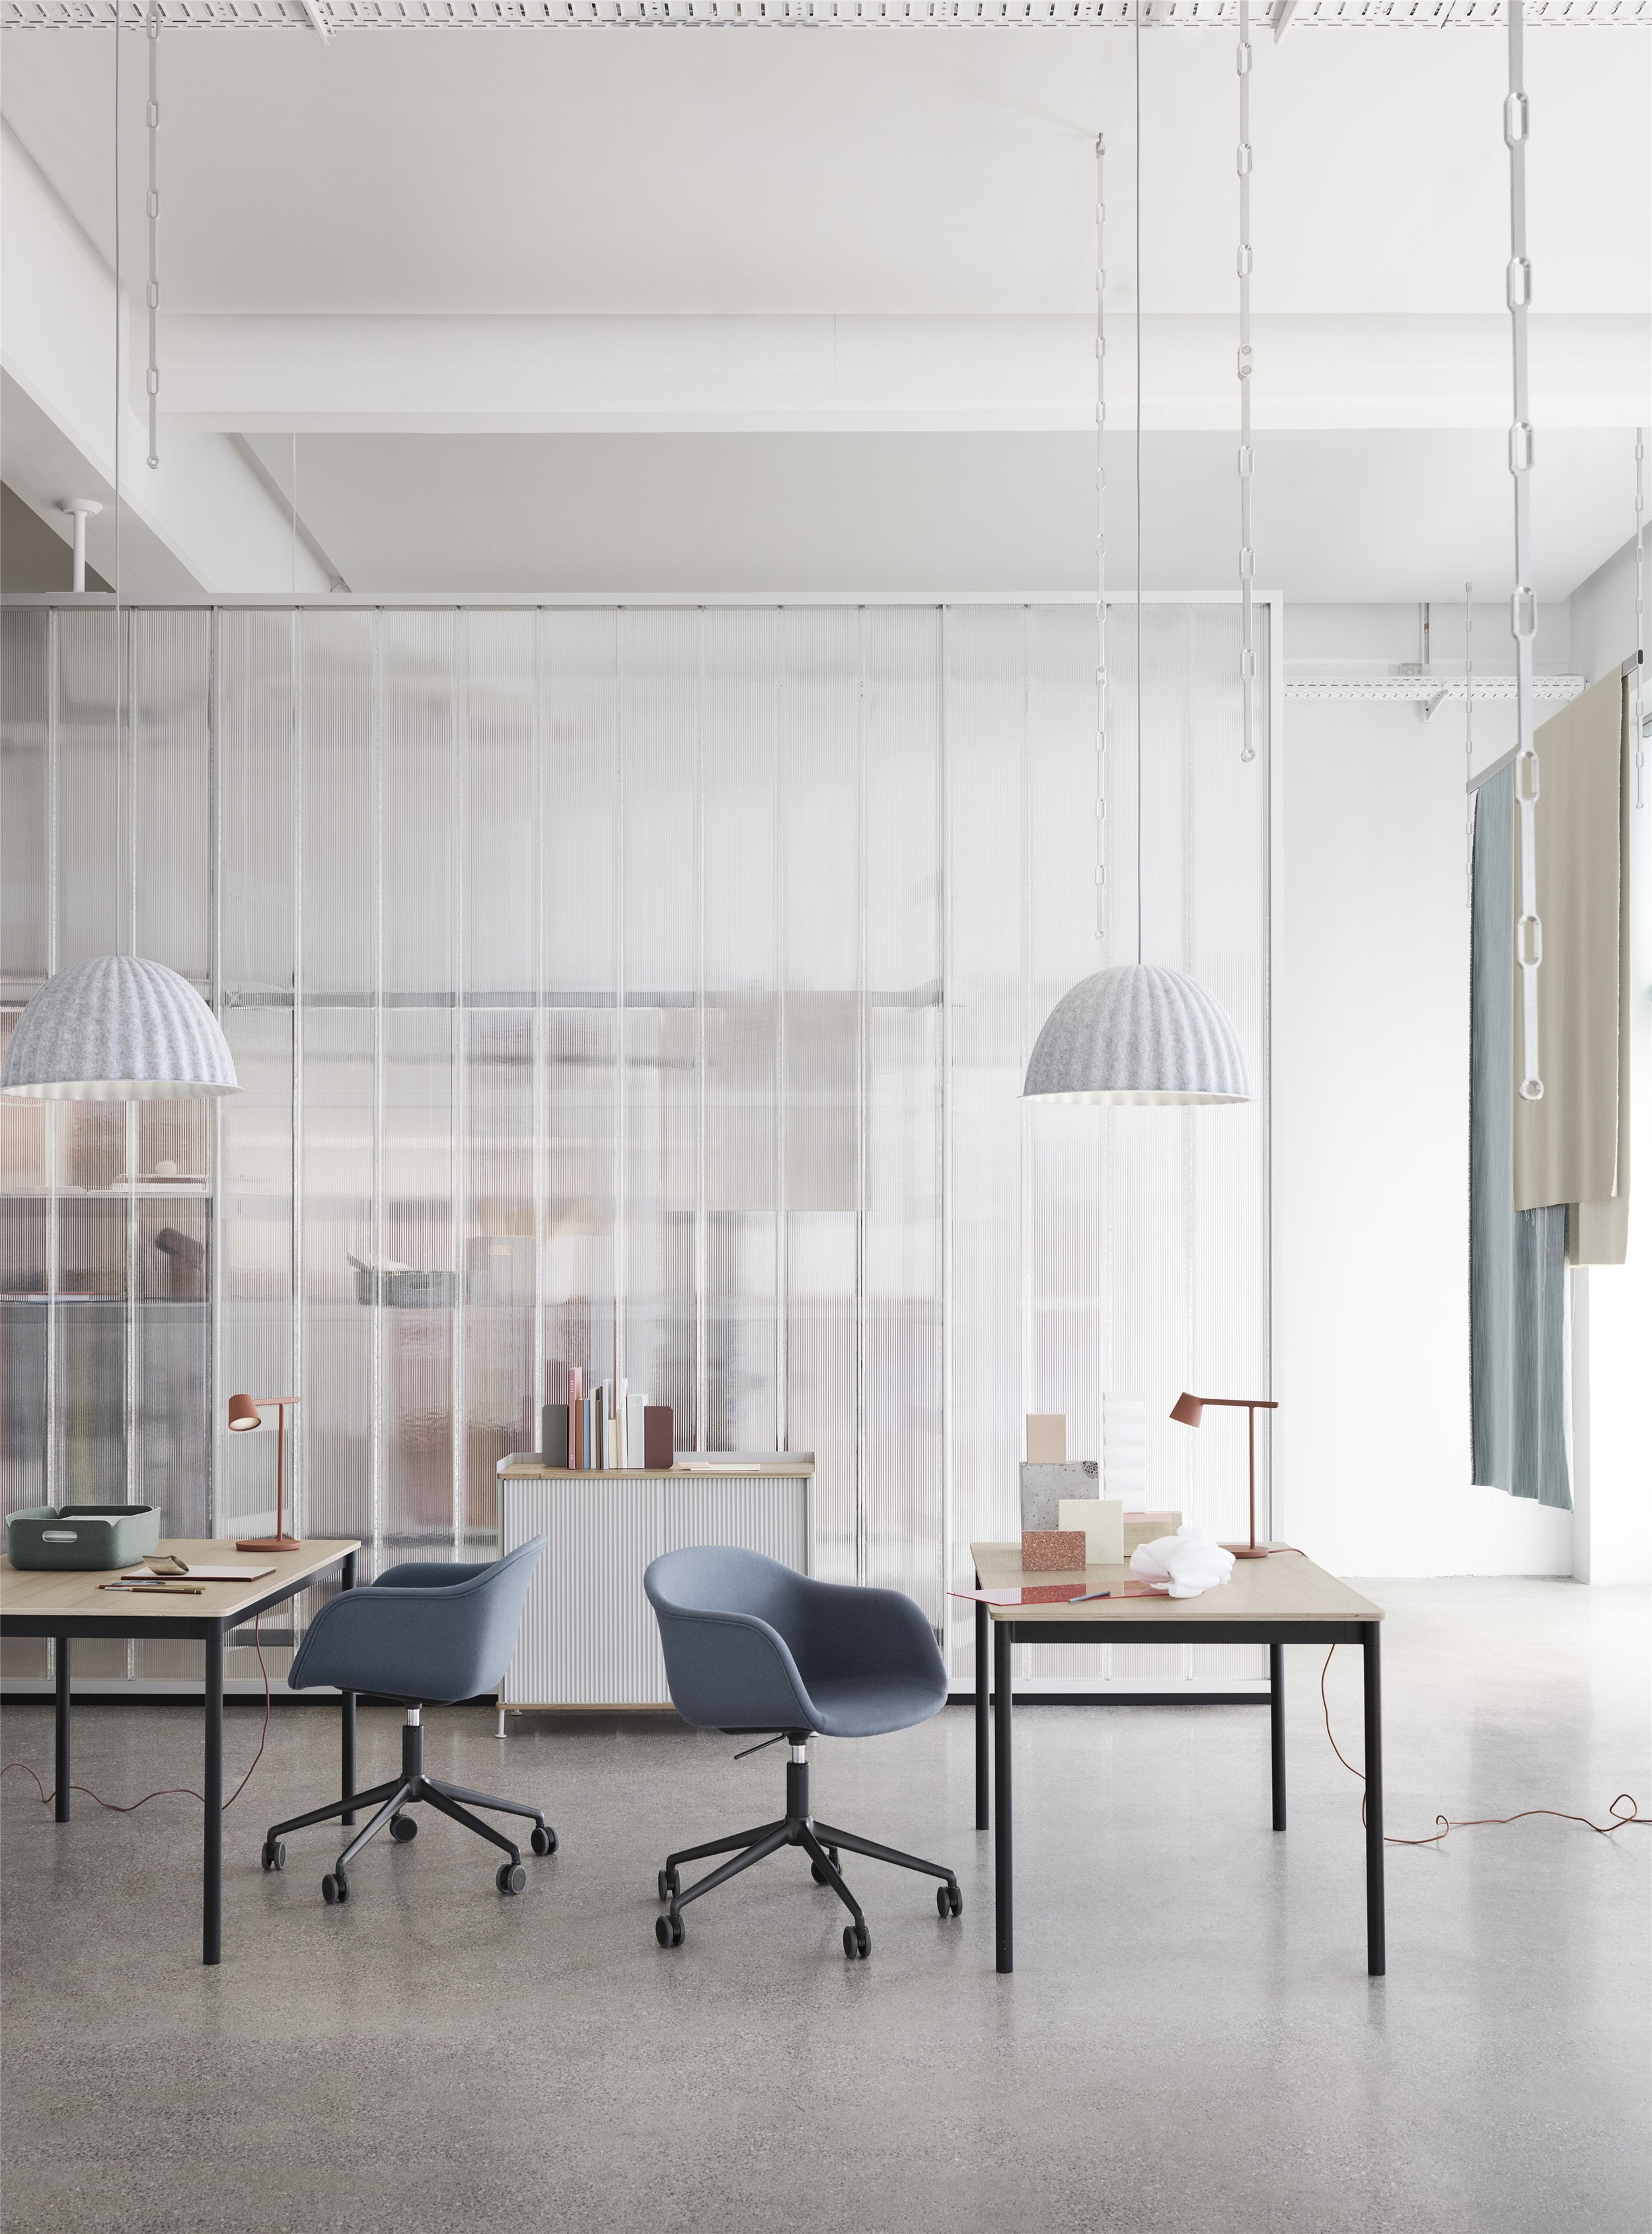 Muuto Under the bell 55 lighting home interior scandinavian design 8.jpg